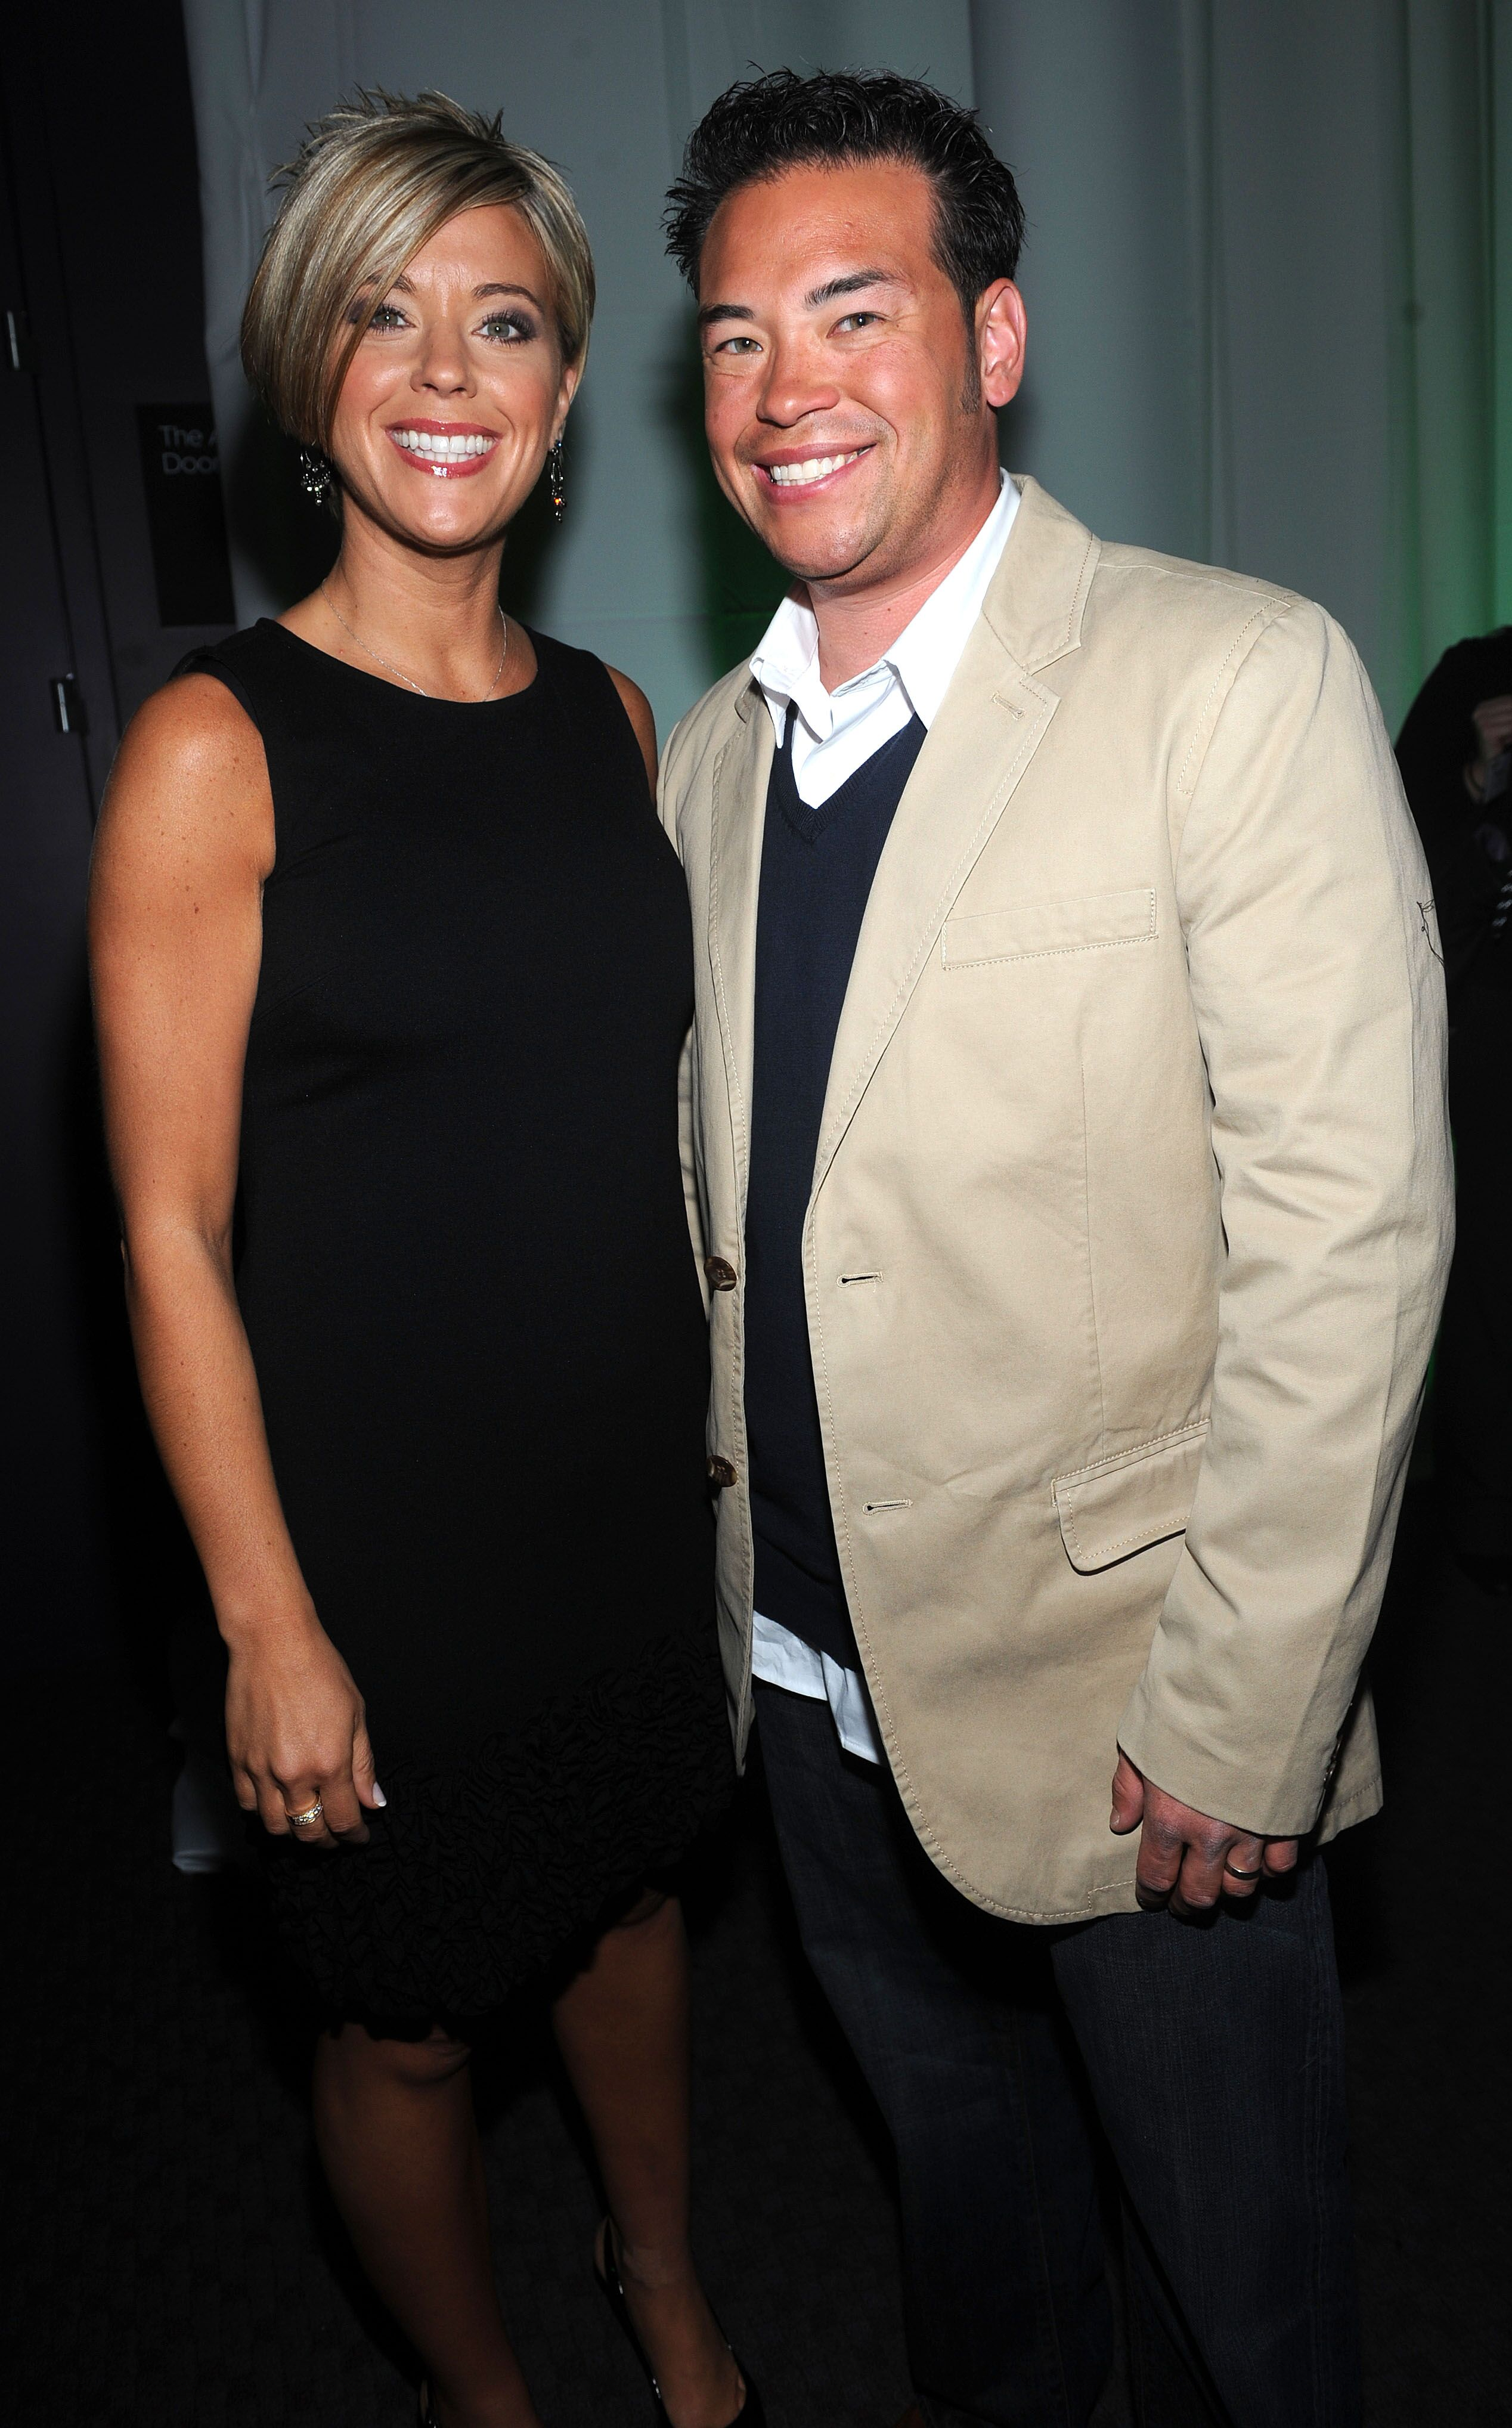 Kate Gosselin and Jon Gosselin attend Discovery Upfront at Jazz at Lincoln Center on April 2, 2009 | Photo: Getty Images